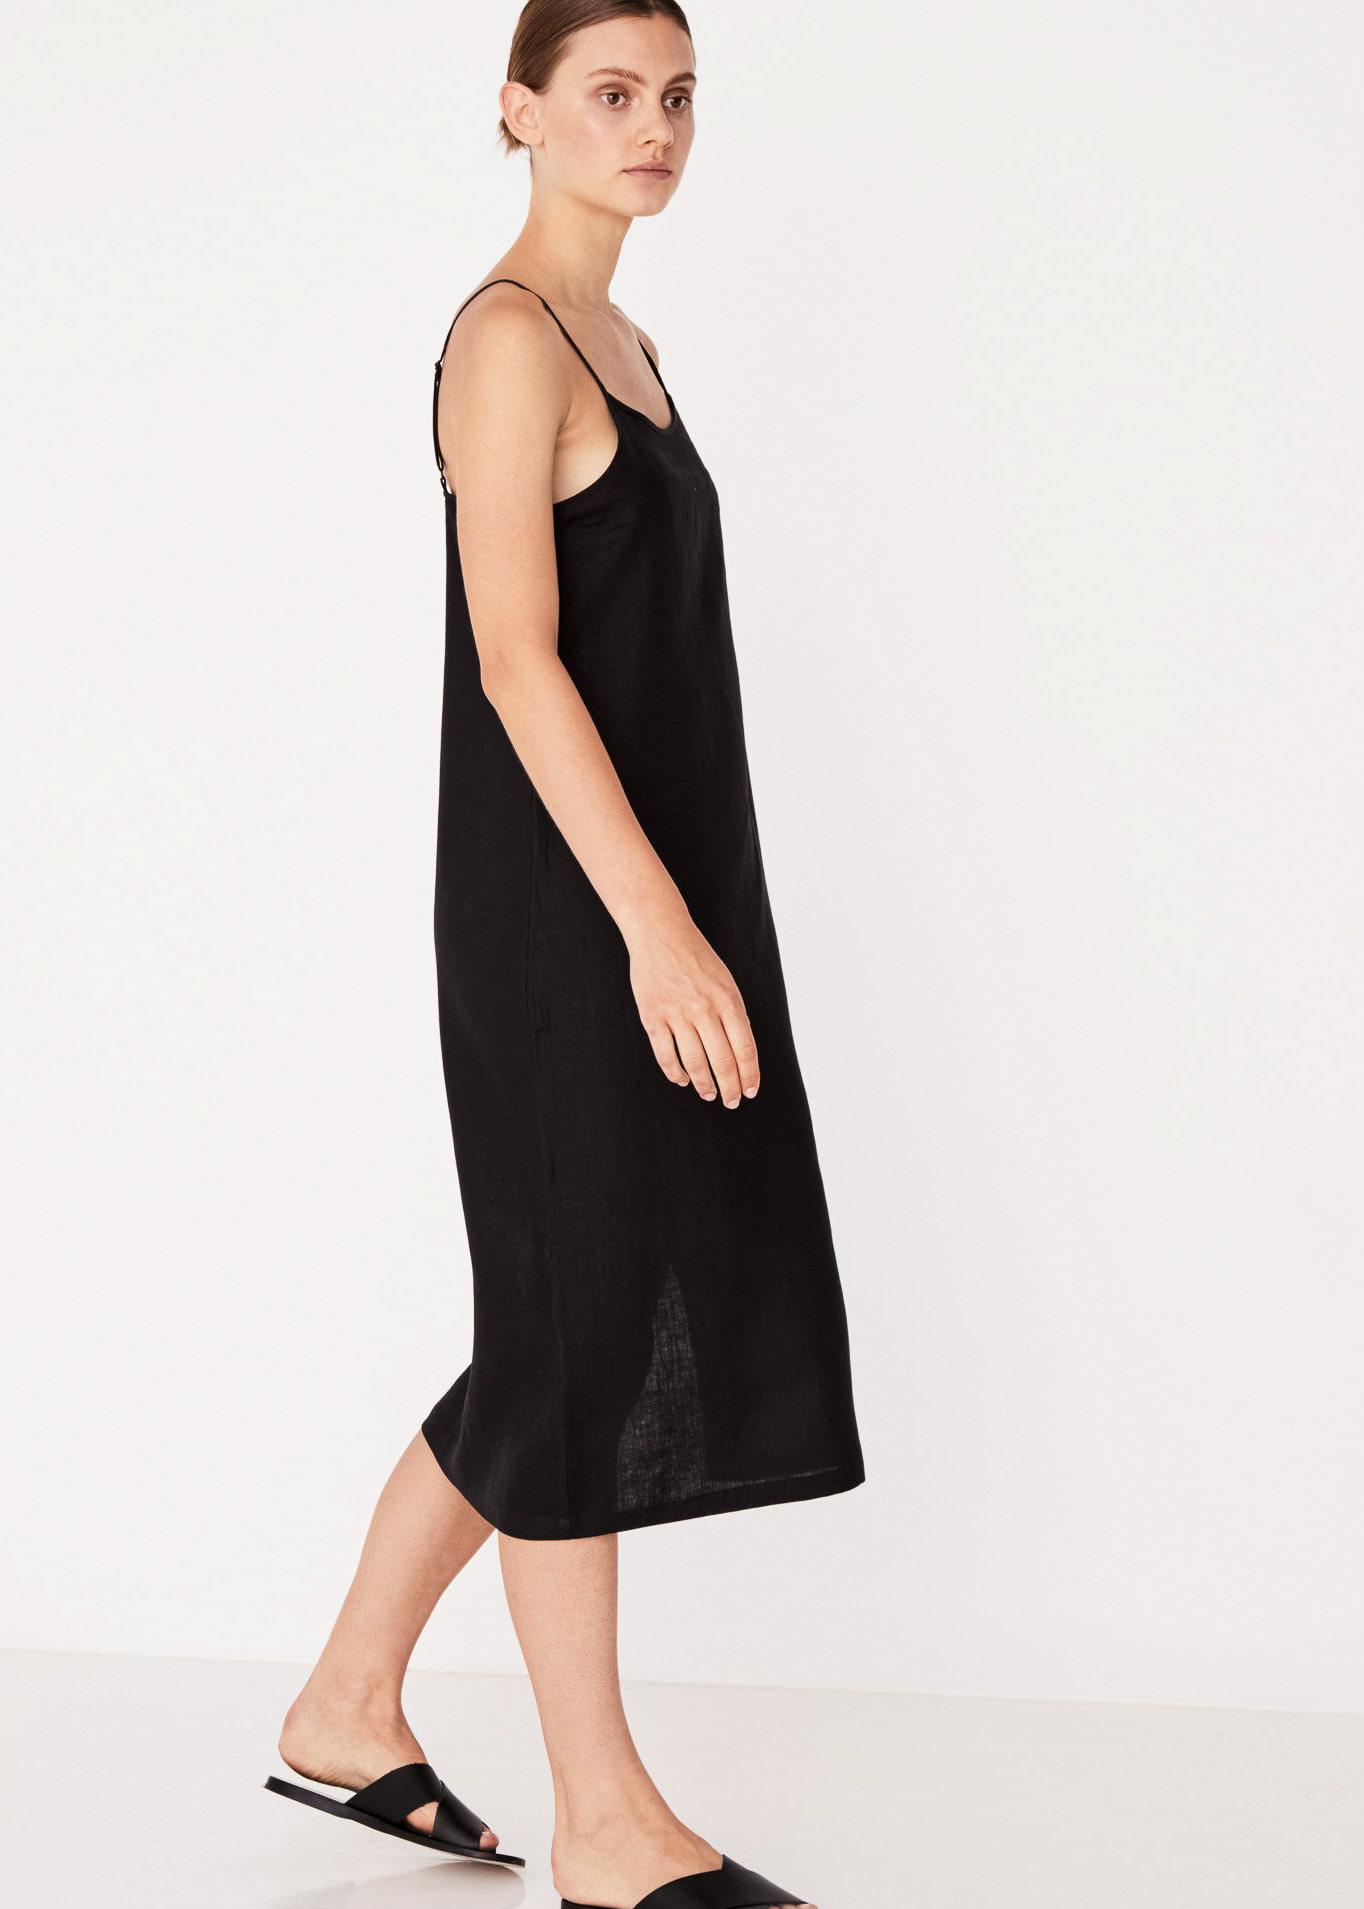 ASSEMBLY LABEL ANTON CAMISOLE DRESS BLACK